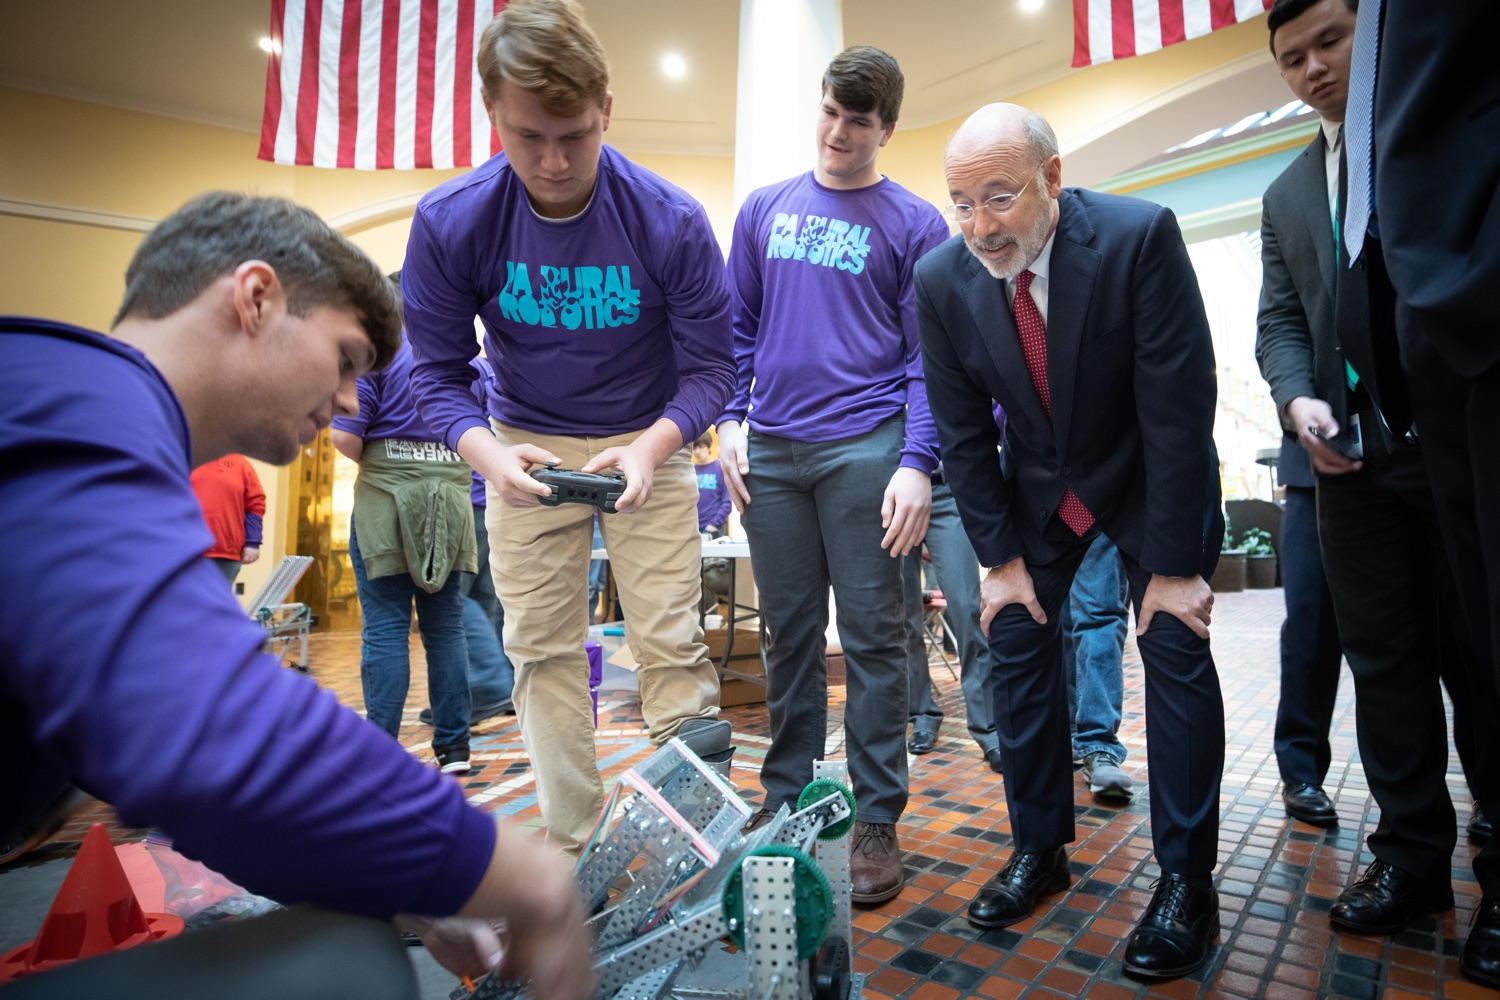 """<a href=""""https://filesource.wostreaming.net/commonwealthofpa/photo/17587_gov_pasmart_rural_robotics_dz_016.jpg"""" target=""""_blank"""">⇣Download Photo<br></a>Pennsylvania Governor Tom Wolf meeting with students at the robotics demonstration.  Celebrating the success of the PAsmart workforce development program to create educational opportunities at schools across the commonwealth, Governor Tom Wolf welcomed more than 50 students from the Pennsylvania Rural Robotics Initiative to the Capitol today. The students from nine western Pennsylvania school districts showcased their skills in coding, robotics and drone technology. The Wolf administration awarded the initiative a $299,000 PAsmart Advancing Grant earlier this year. Harrisburg, PA  Tuesday, November 12, 2019"""